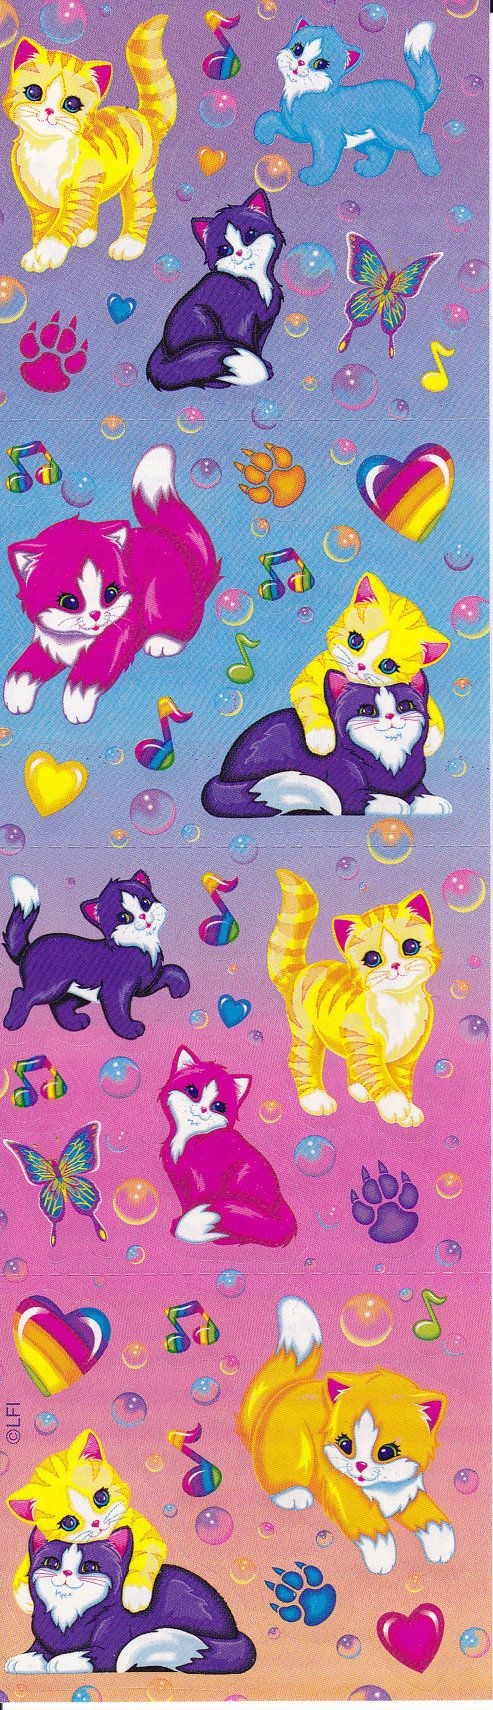 Vintage Lisa Frank Playful Kitten Sticker Strip by NovasNickNacks, $5.00